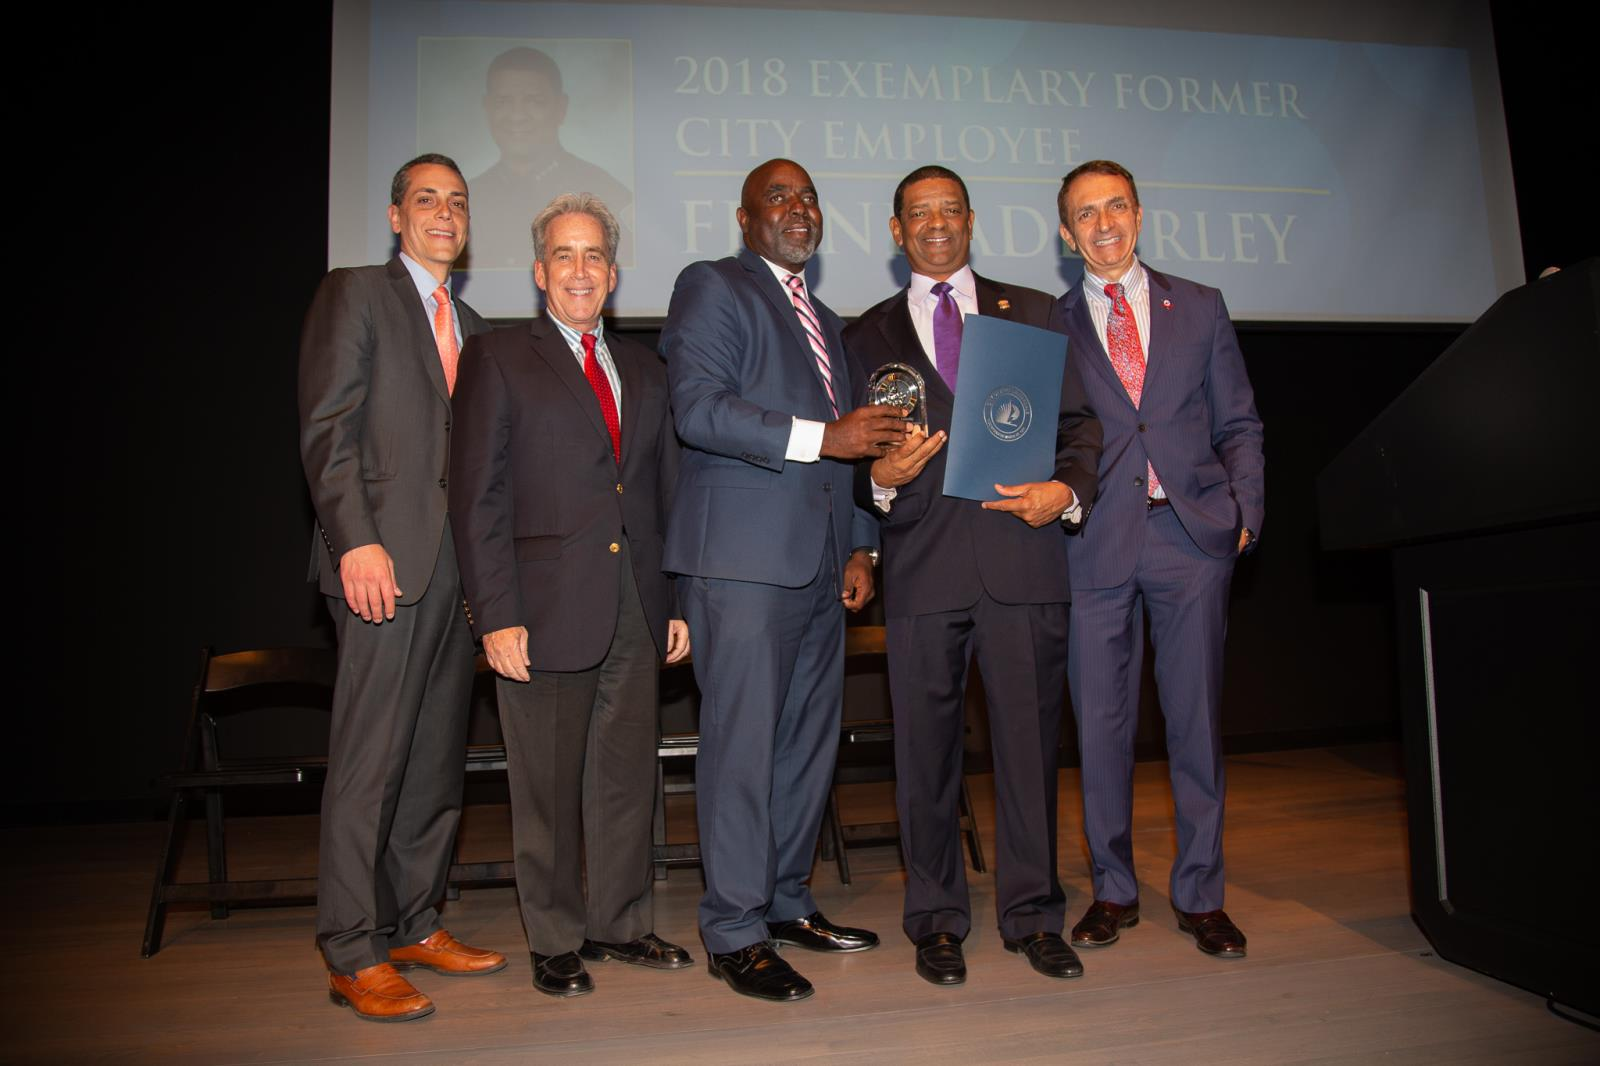 Fort Lauderdale City Commission with the 2018 Exemplary Former City Employee Frank Adderley